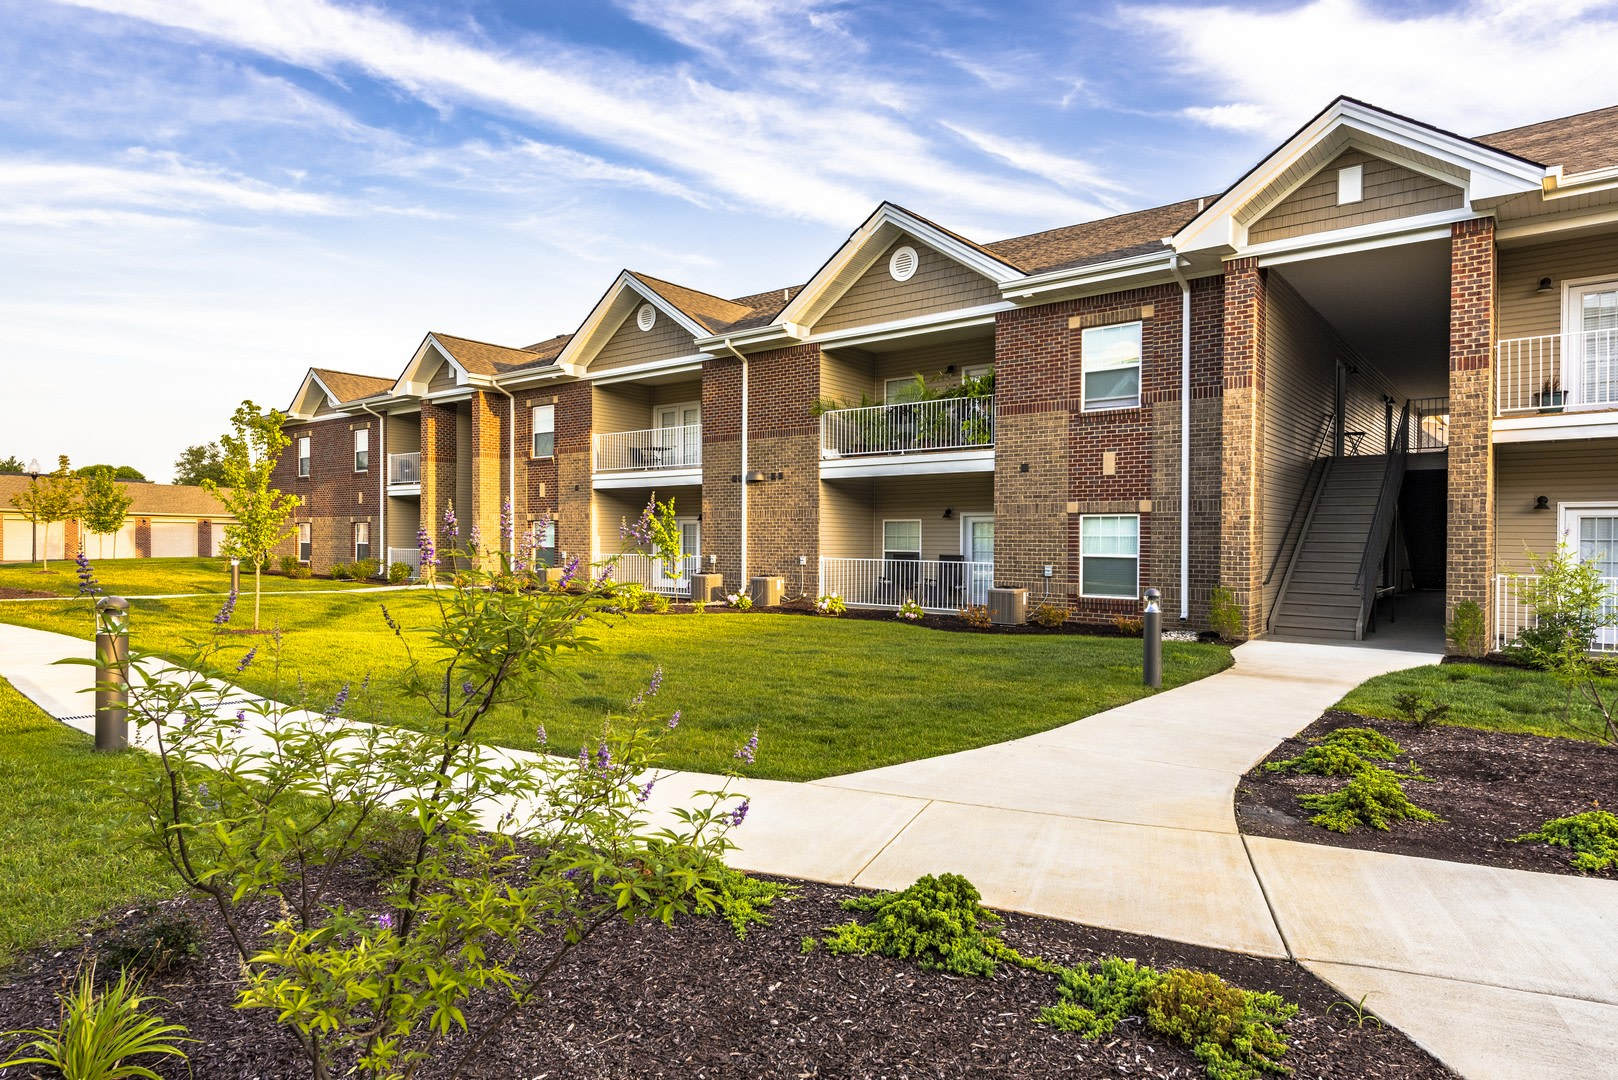 20 Best Apartments in Louisville  KY starting at  420 . 2 Bedroom Apartments Louisville Ky. Home Design Ideas